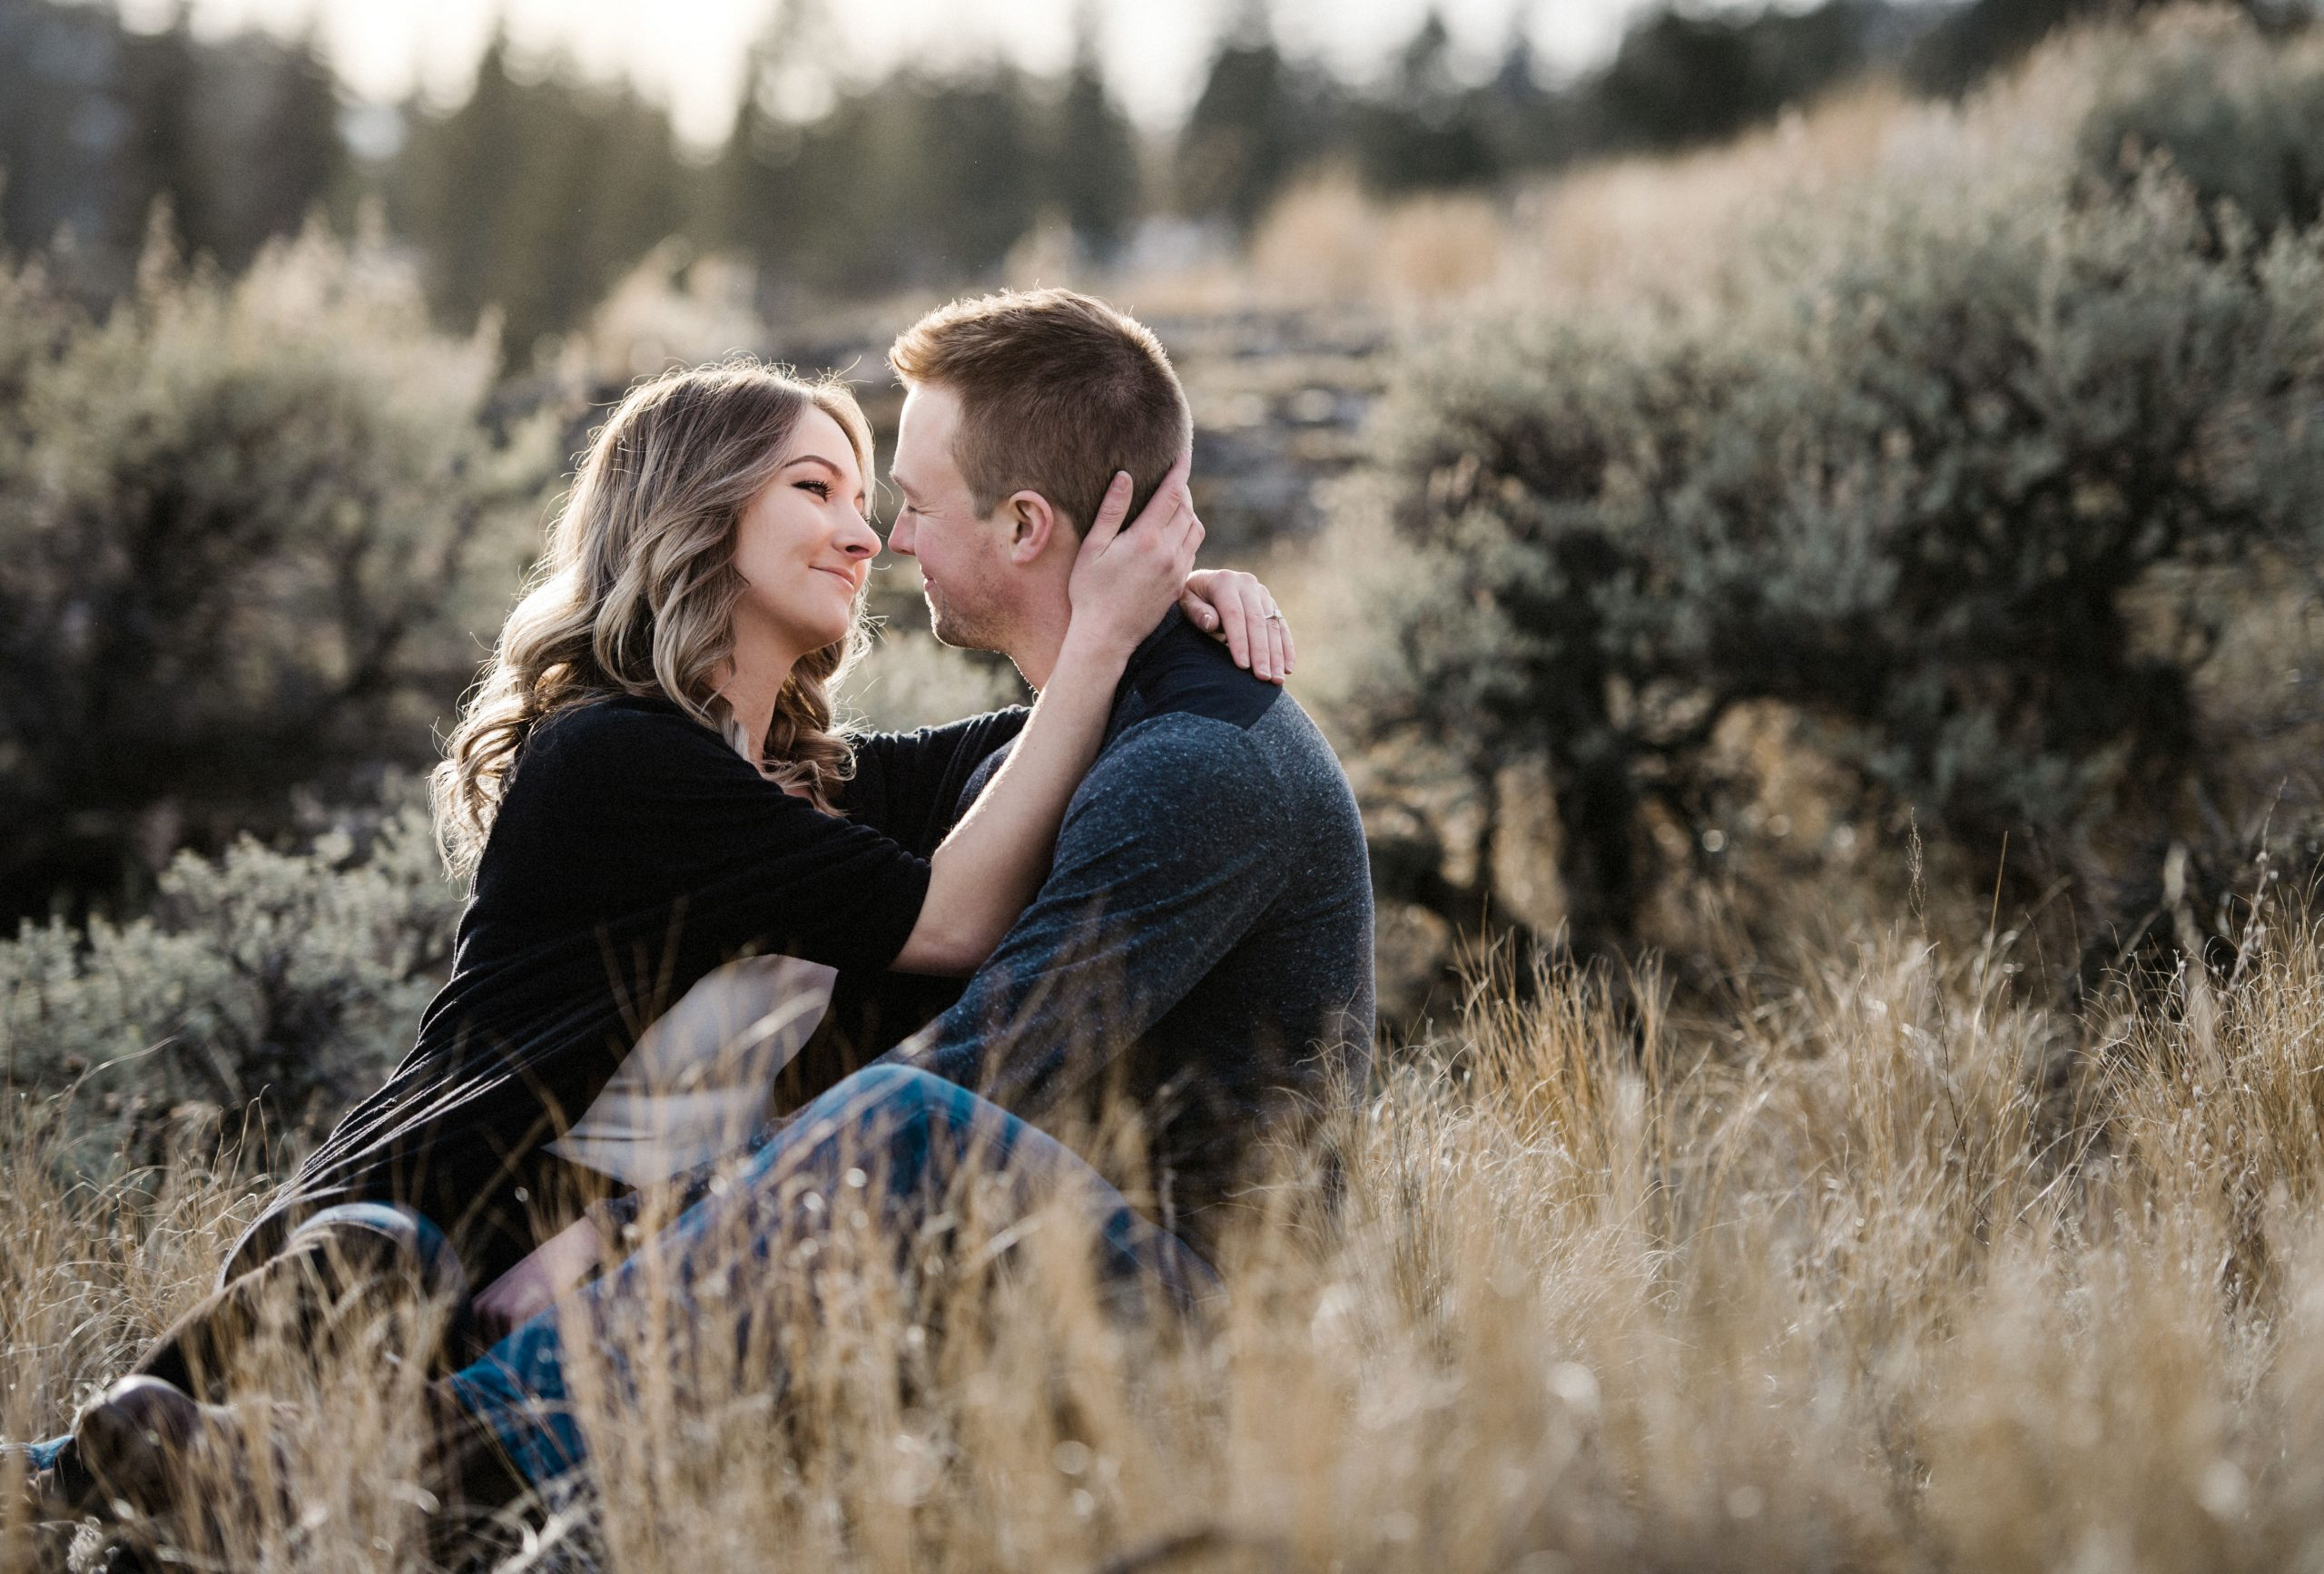 Engagement photographer in Kamloops outdoor romantic portraits